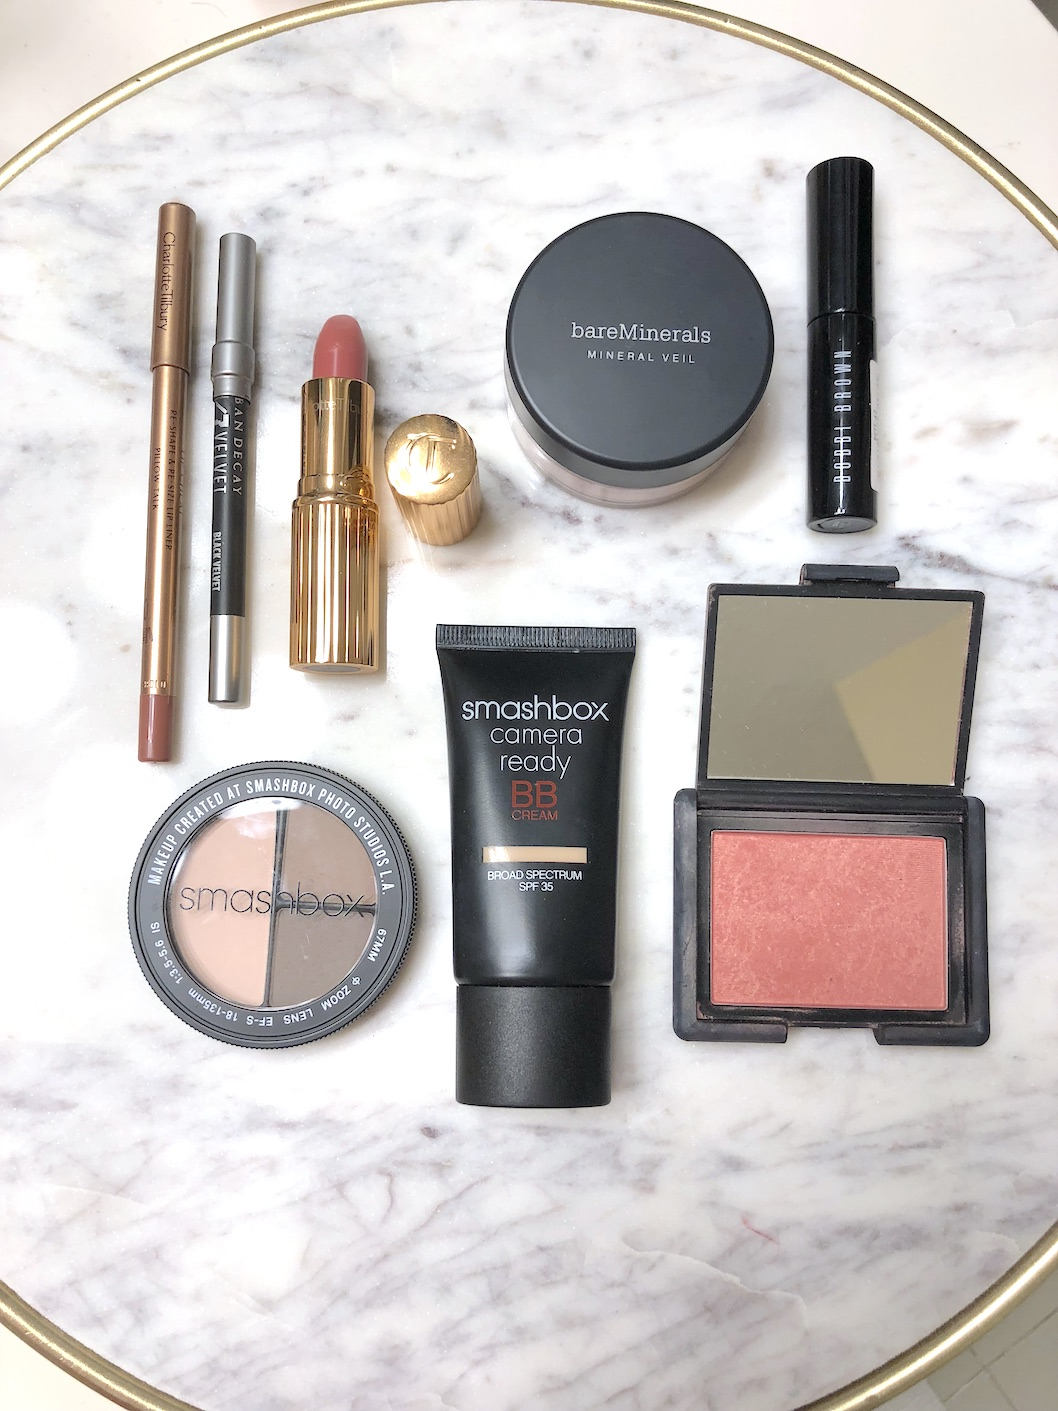 Whats In My Makeup Bag - Foundation, Eyeshadow, Blush, Lipcolor